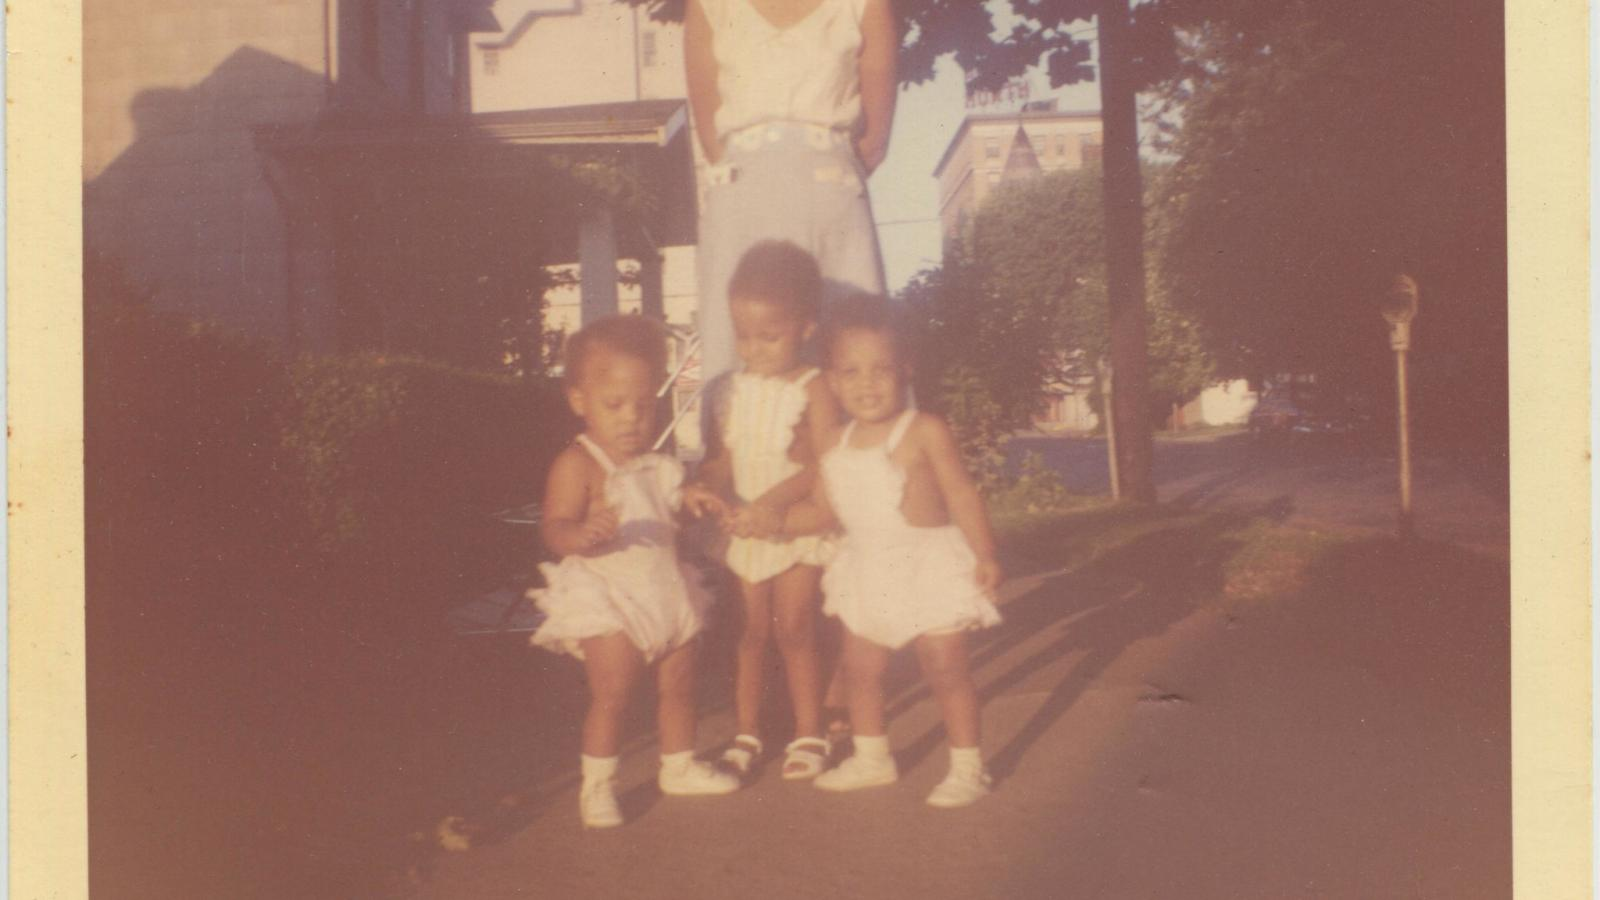 Jennie, Maureen, and Marlene as toddlers with mother Geraldine behind them standing on the sidewalk in front of 709 3rd Street